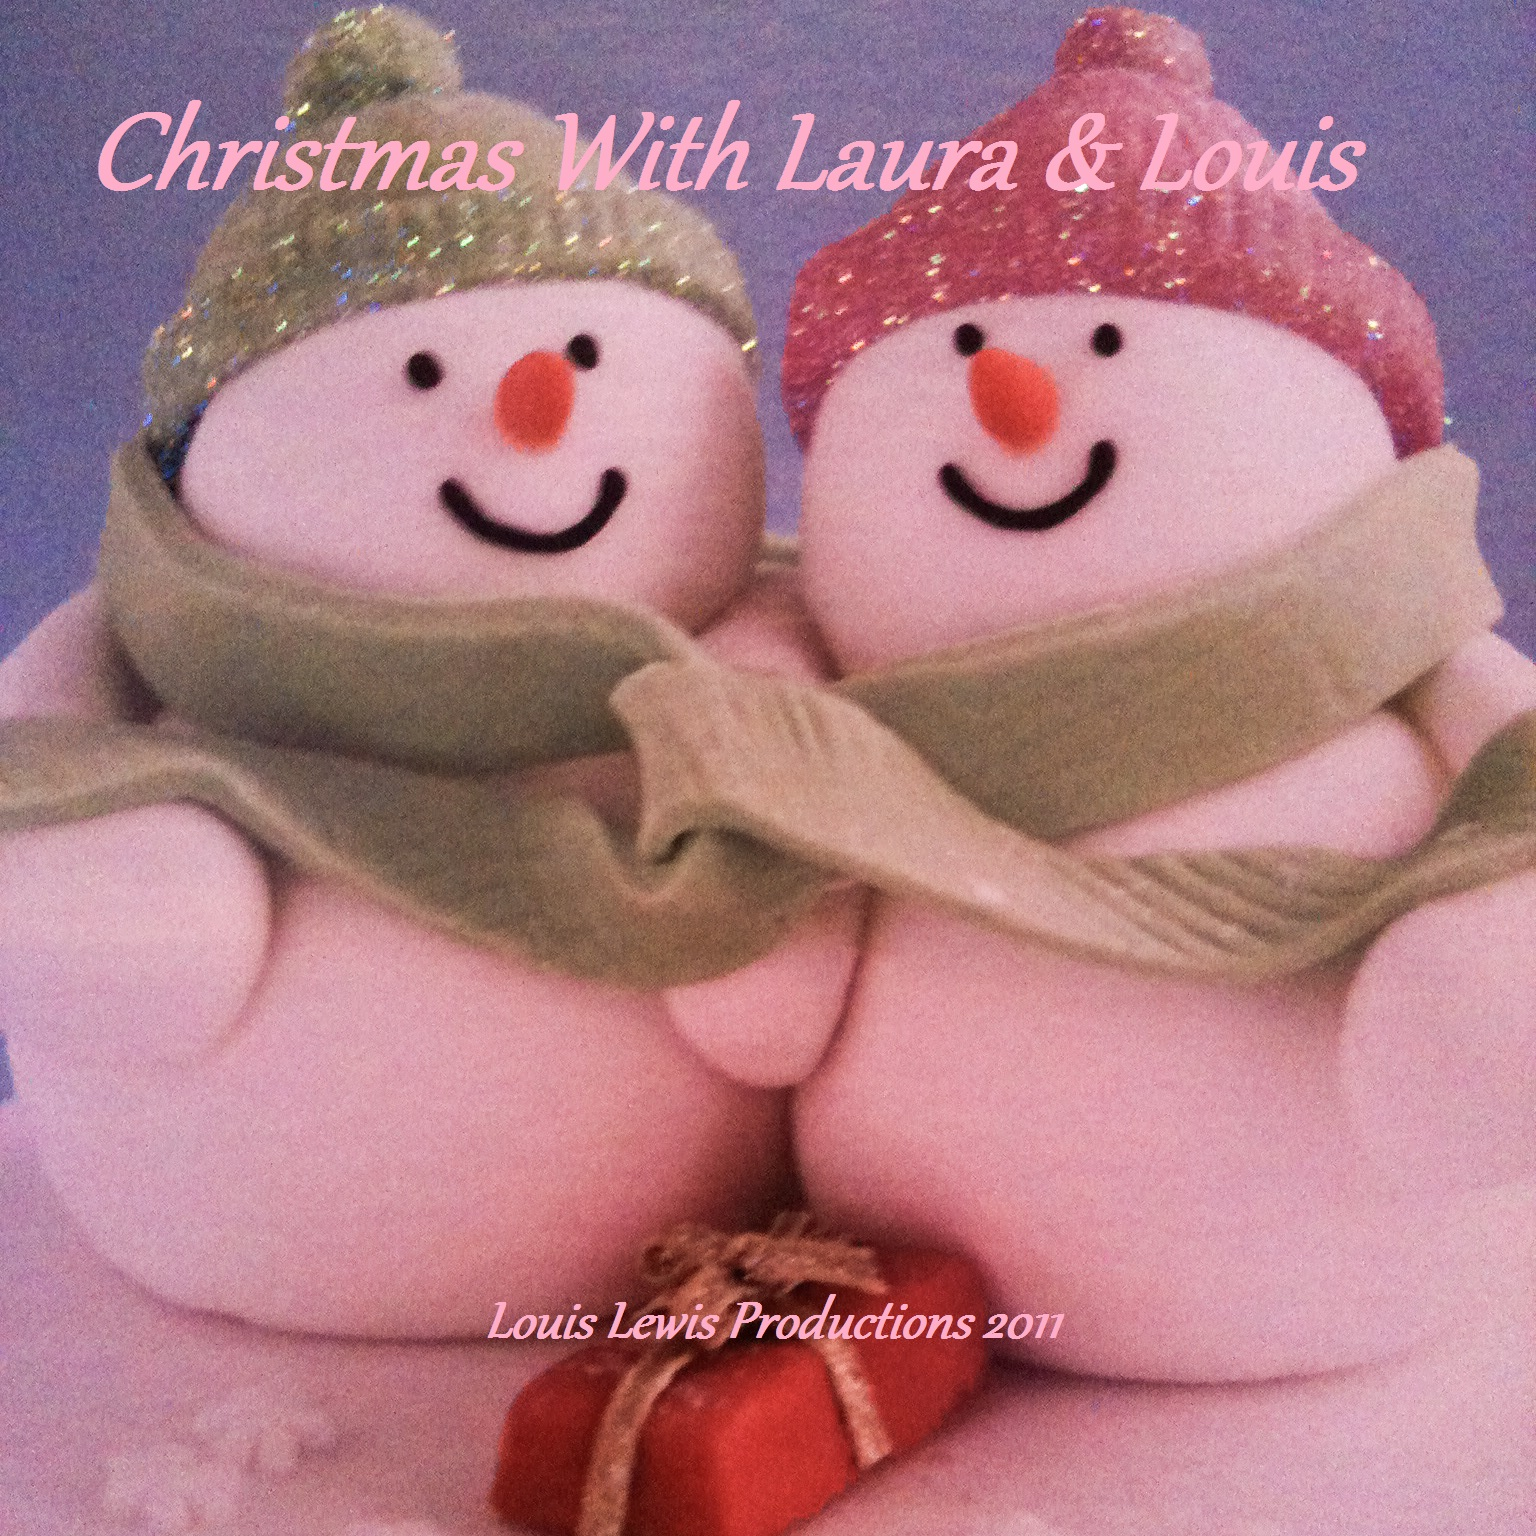 image of Christmas With Laura & Louis album